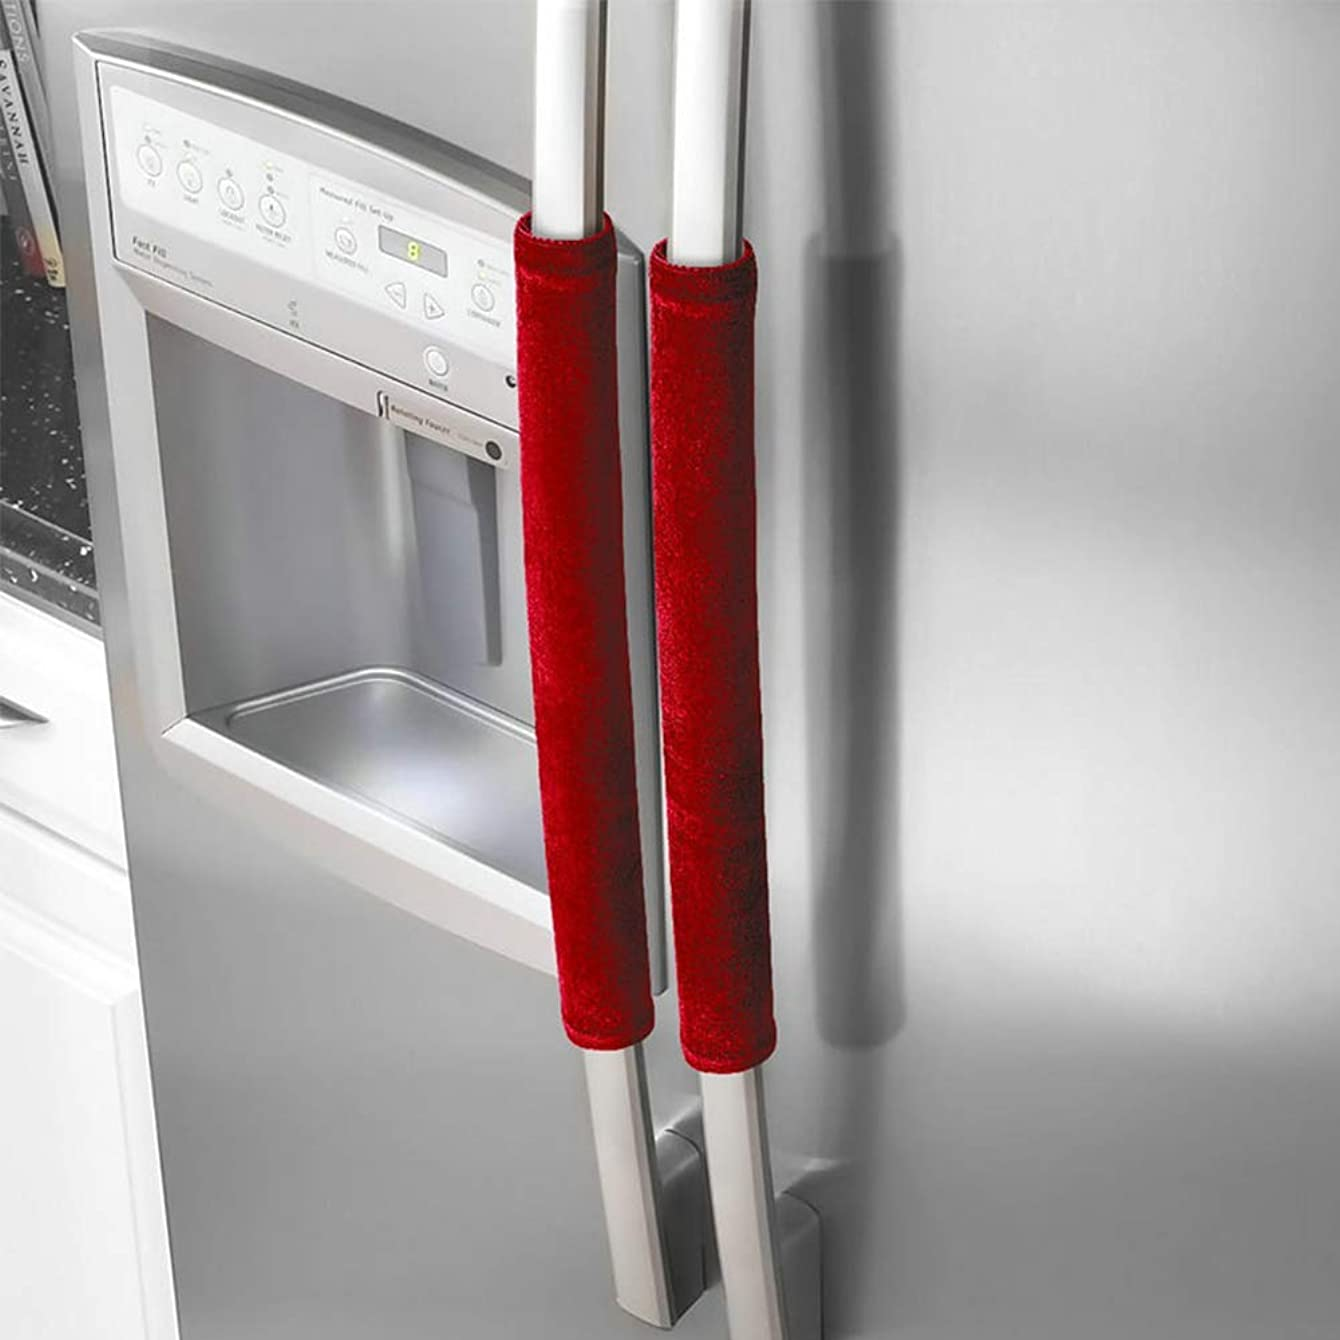 Refrigerator Door Handle Covers,1 Pair Oven Handle Cover Refrigerator Door Handle Covers Dishwasher Protector in Kitchen,Keep Your Kitchen Clean from Fingertips,Drips,Food Stains(Red)